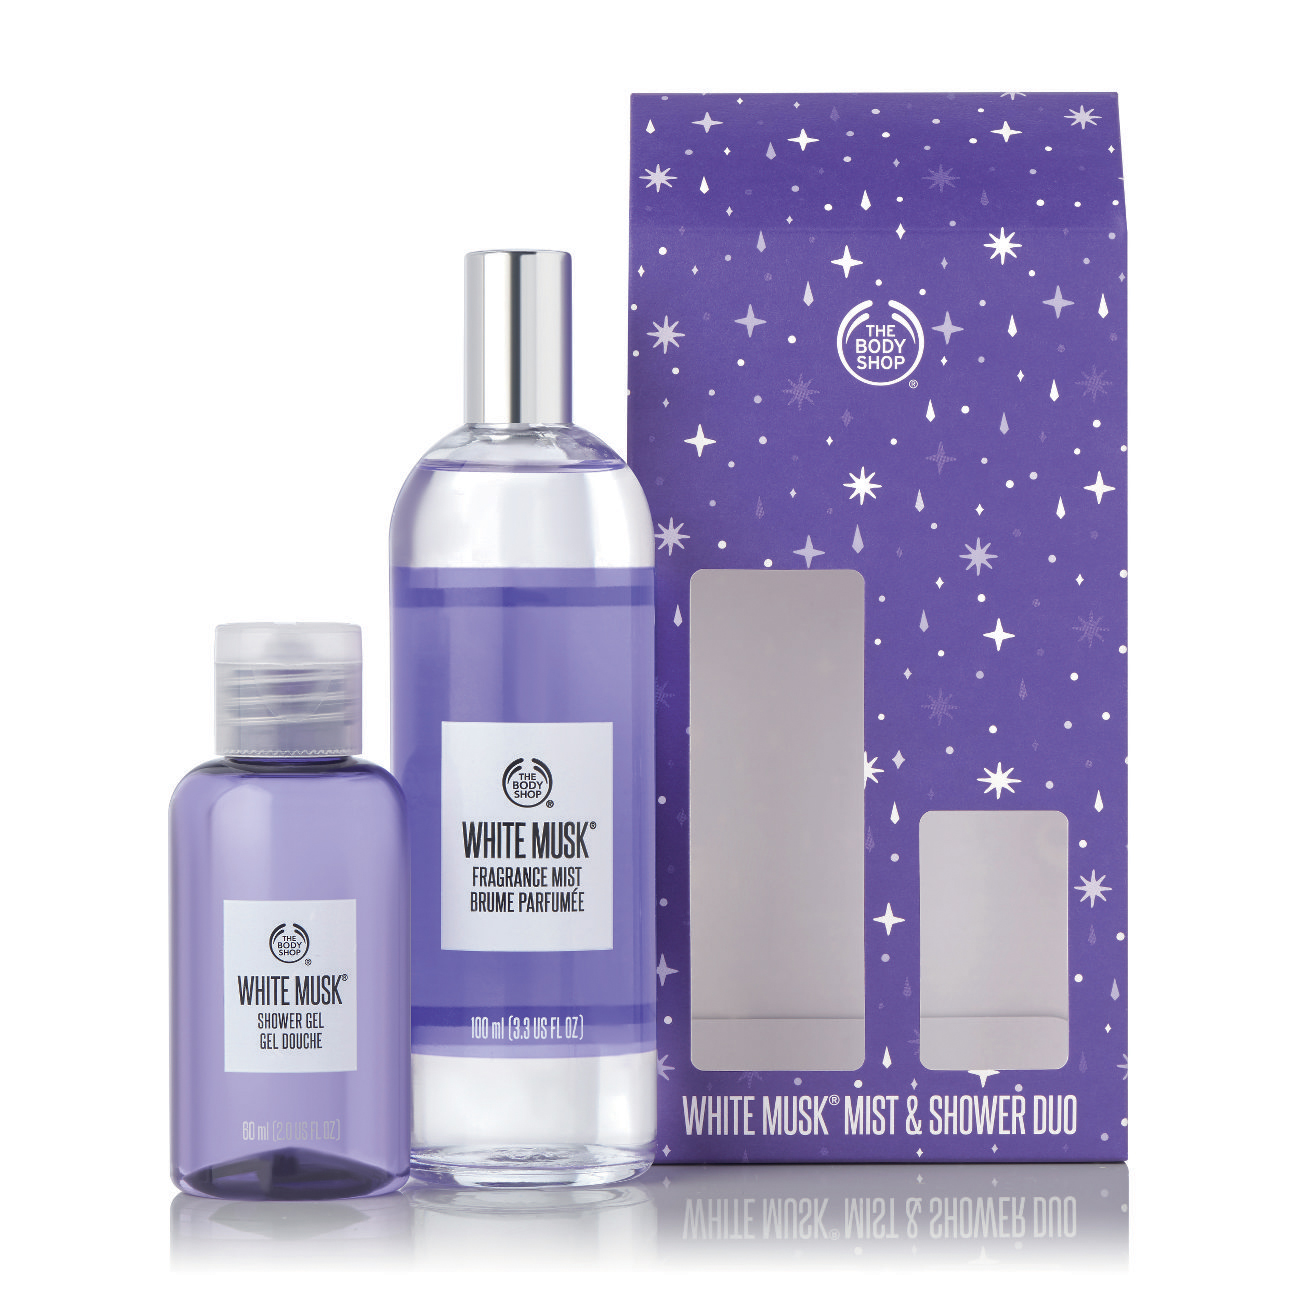 Best Budget Xmas Presents The Body Shop White Musk Duo 2